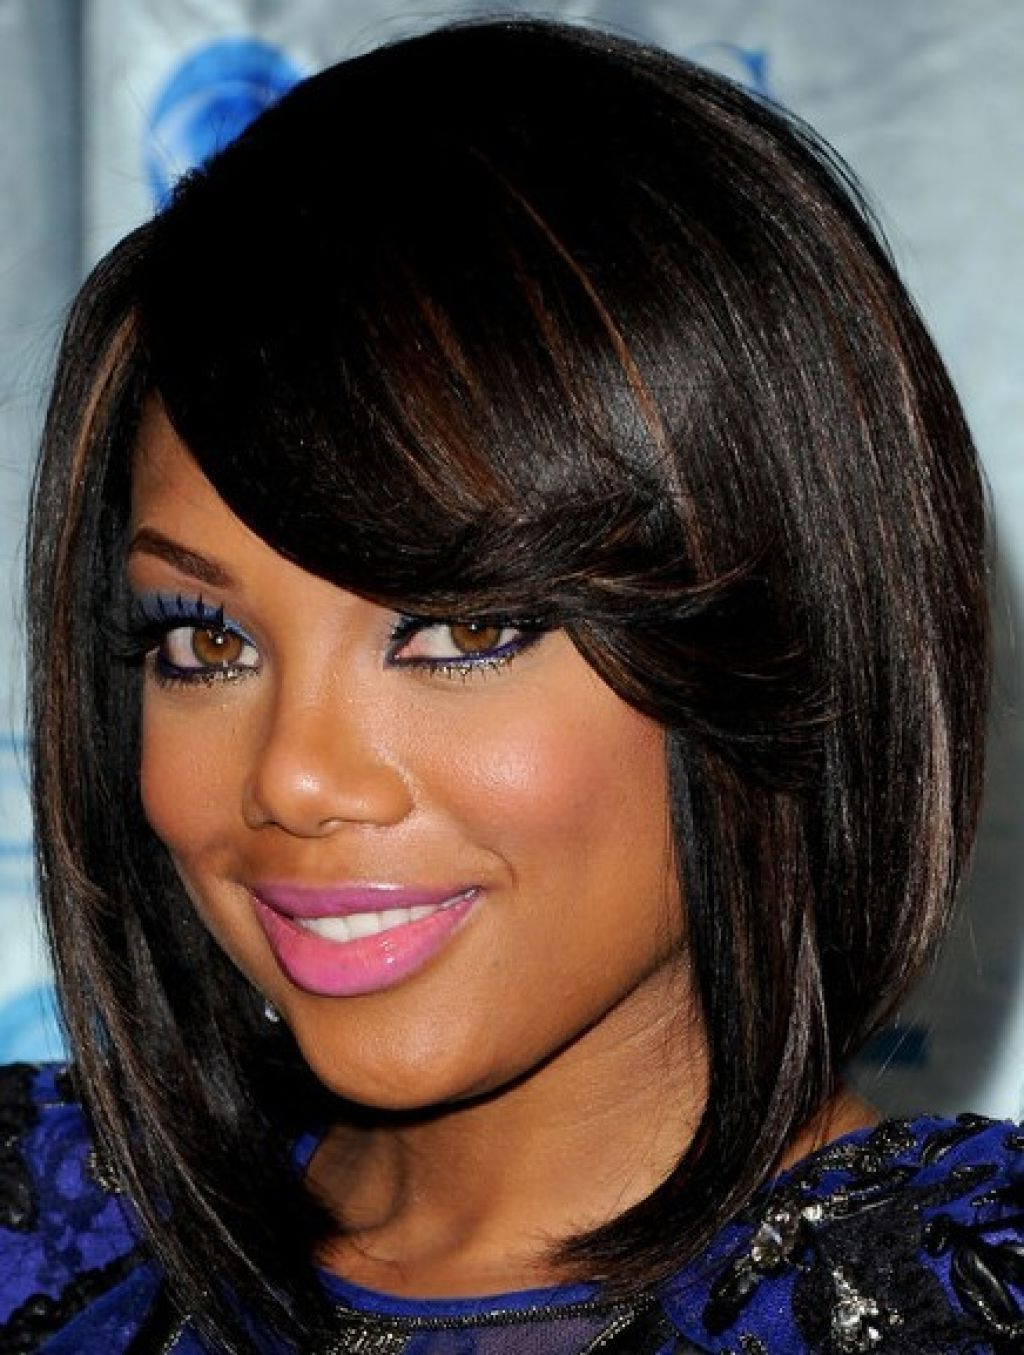 Most Current Medium Haircuts For Black Women With Round Faces Intended For 27 Short Hairstyles And Haircuts For Black Women Of Class (View 12 of 20)